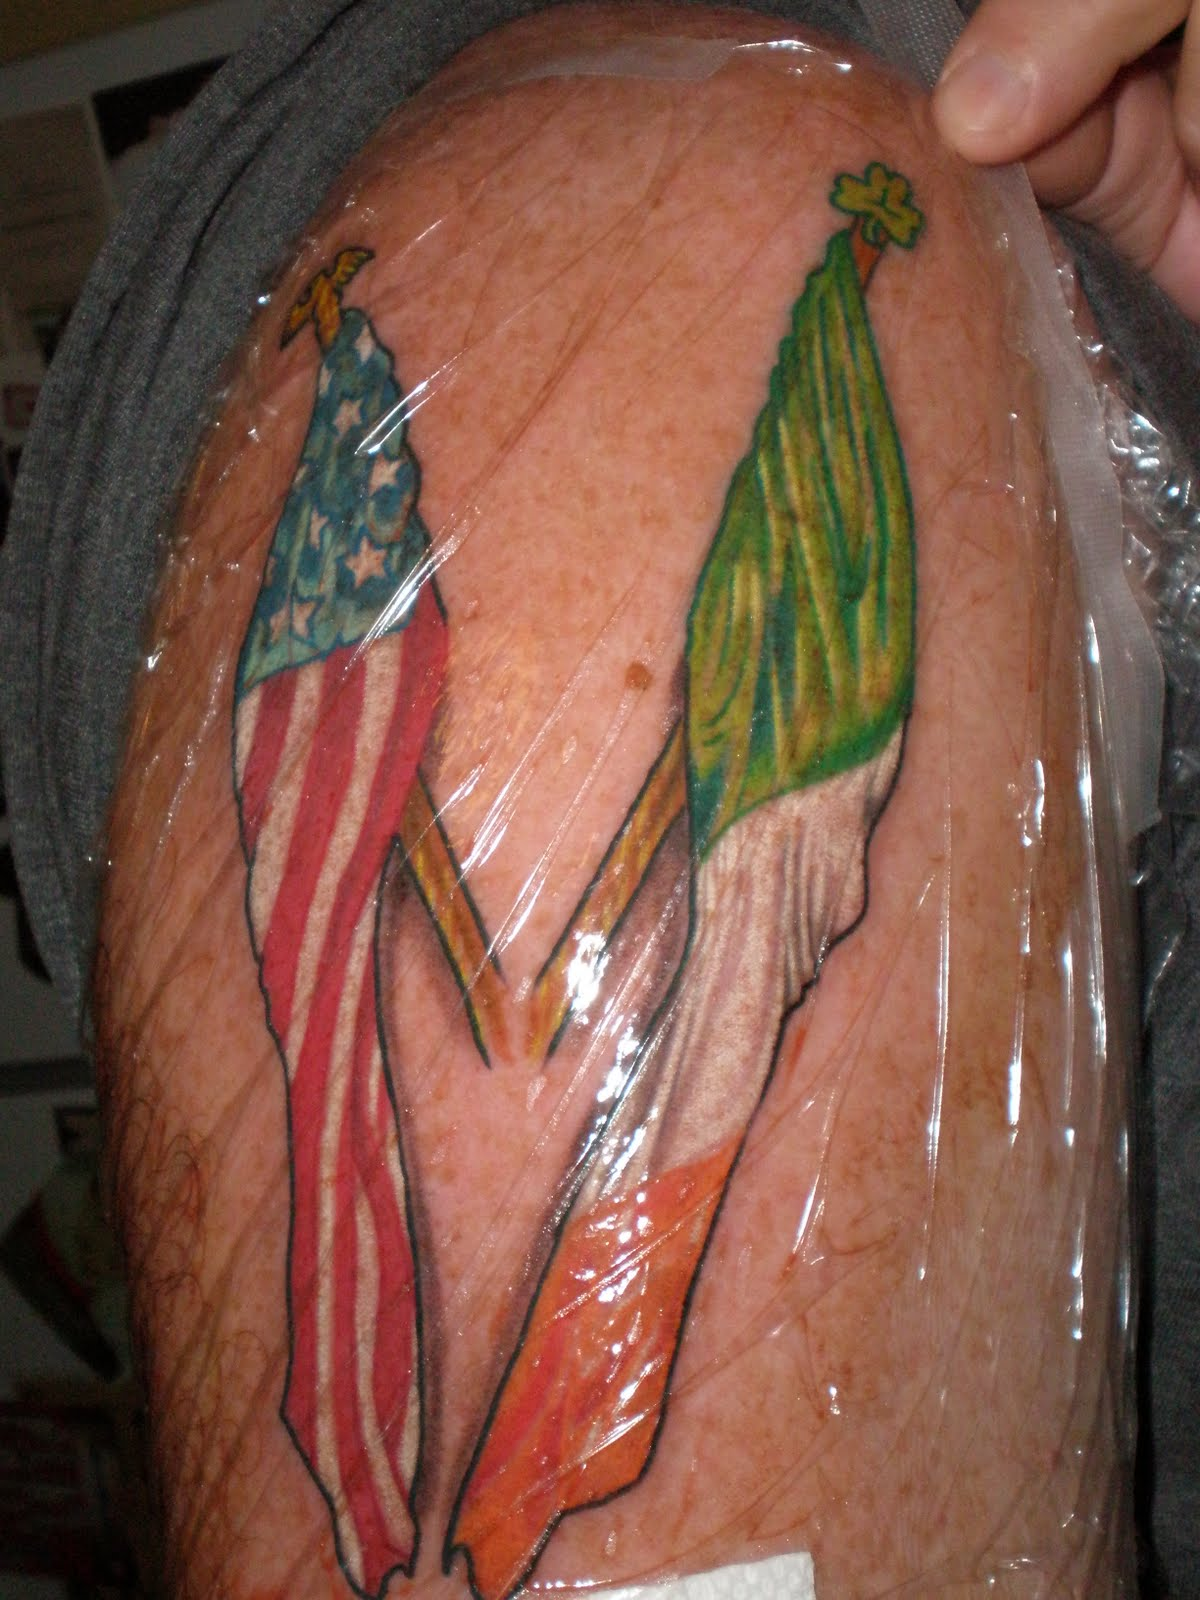 Country Flags Tattoo Design On Shoulder